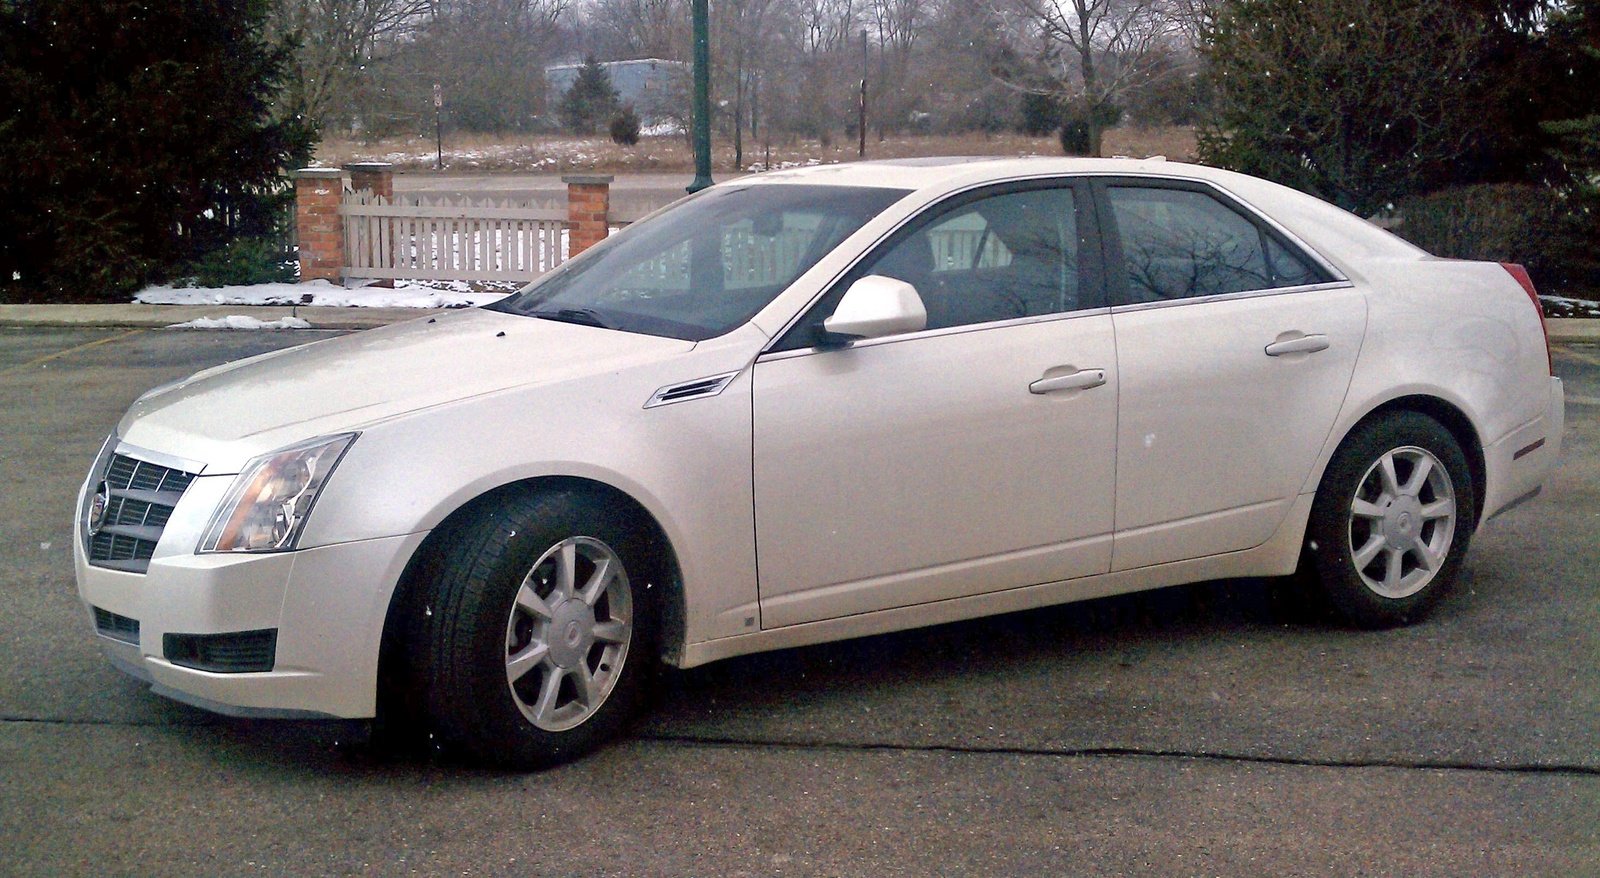 Used Cadillac Cts Coupe >> 2009 Cadillac CTS - Pictures - CarGurus